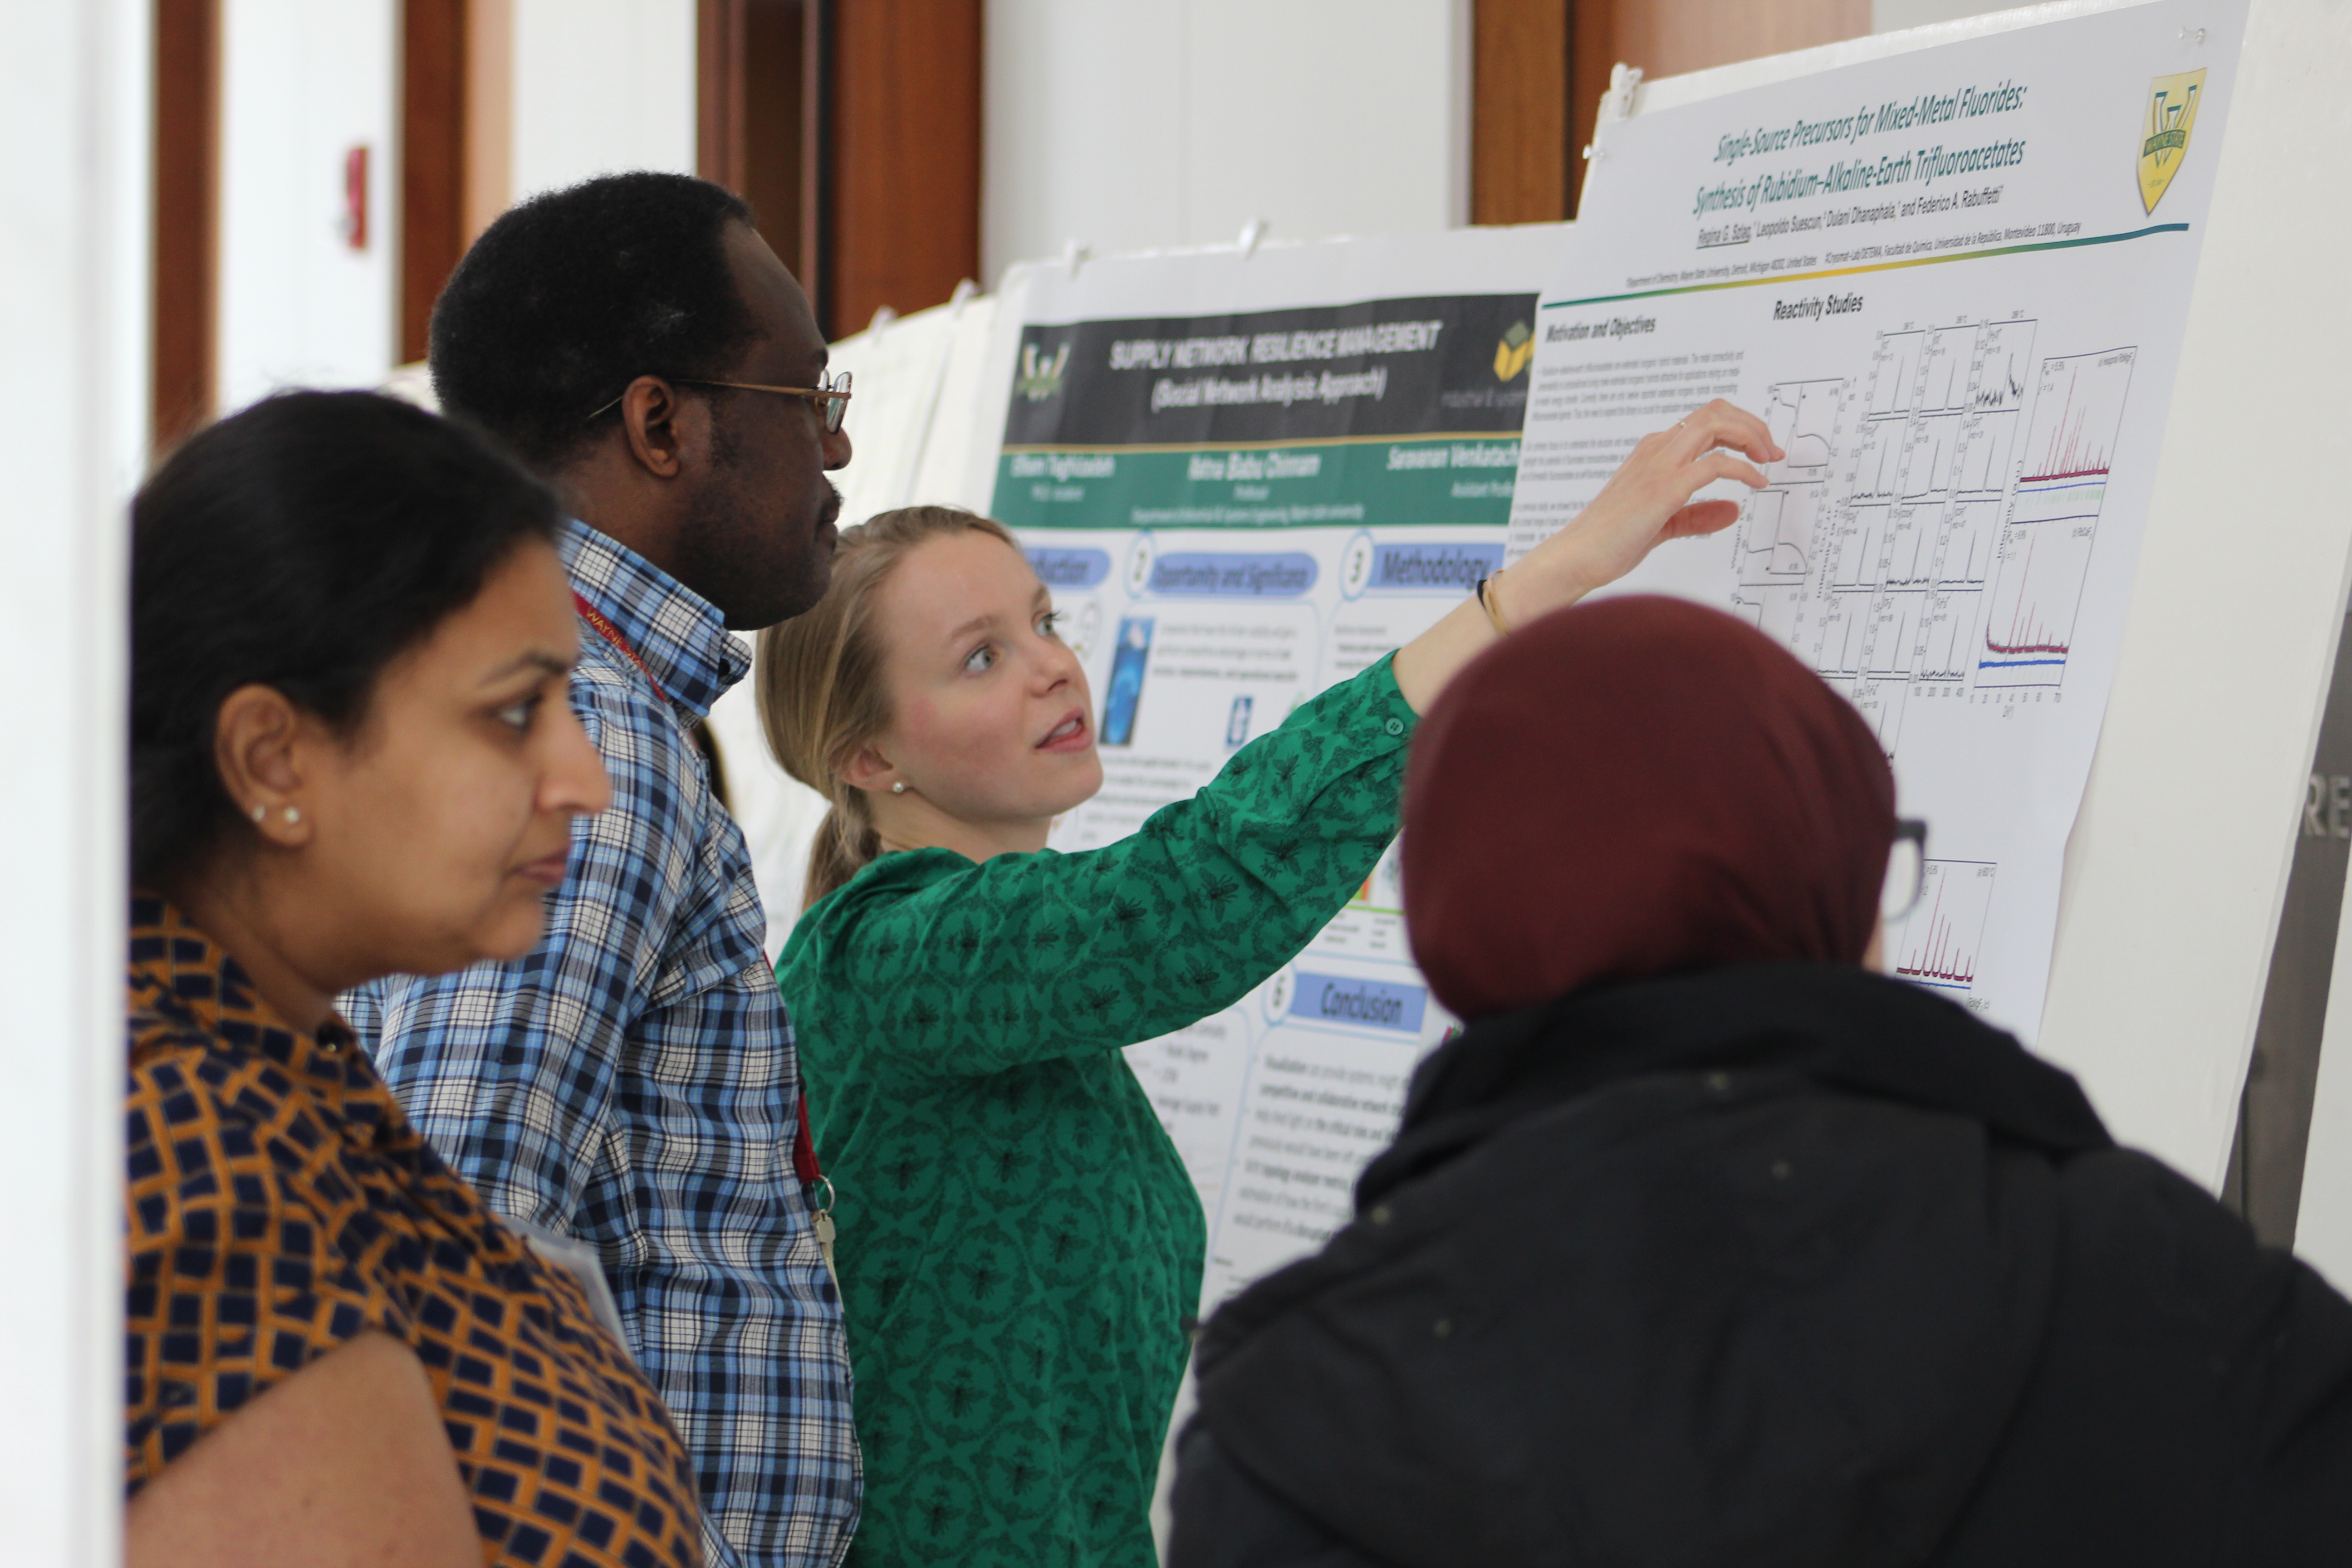 a student showcases her research poster at the graduate research symposium